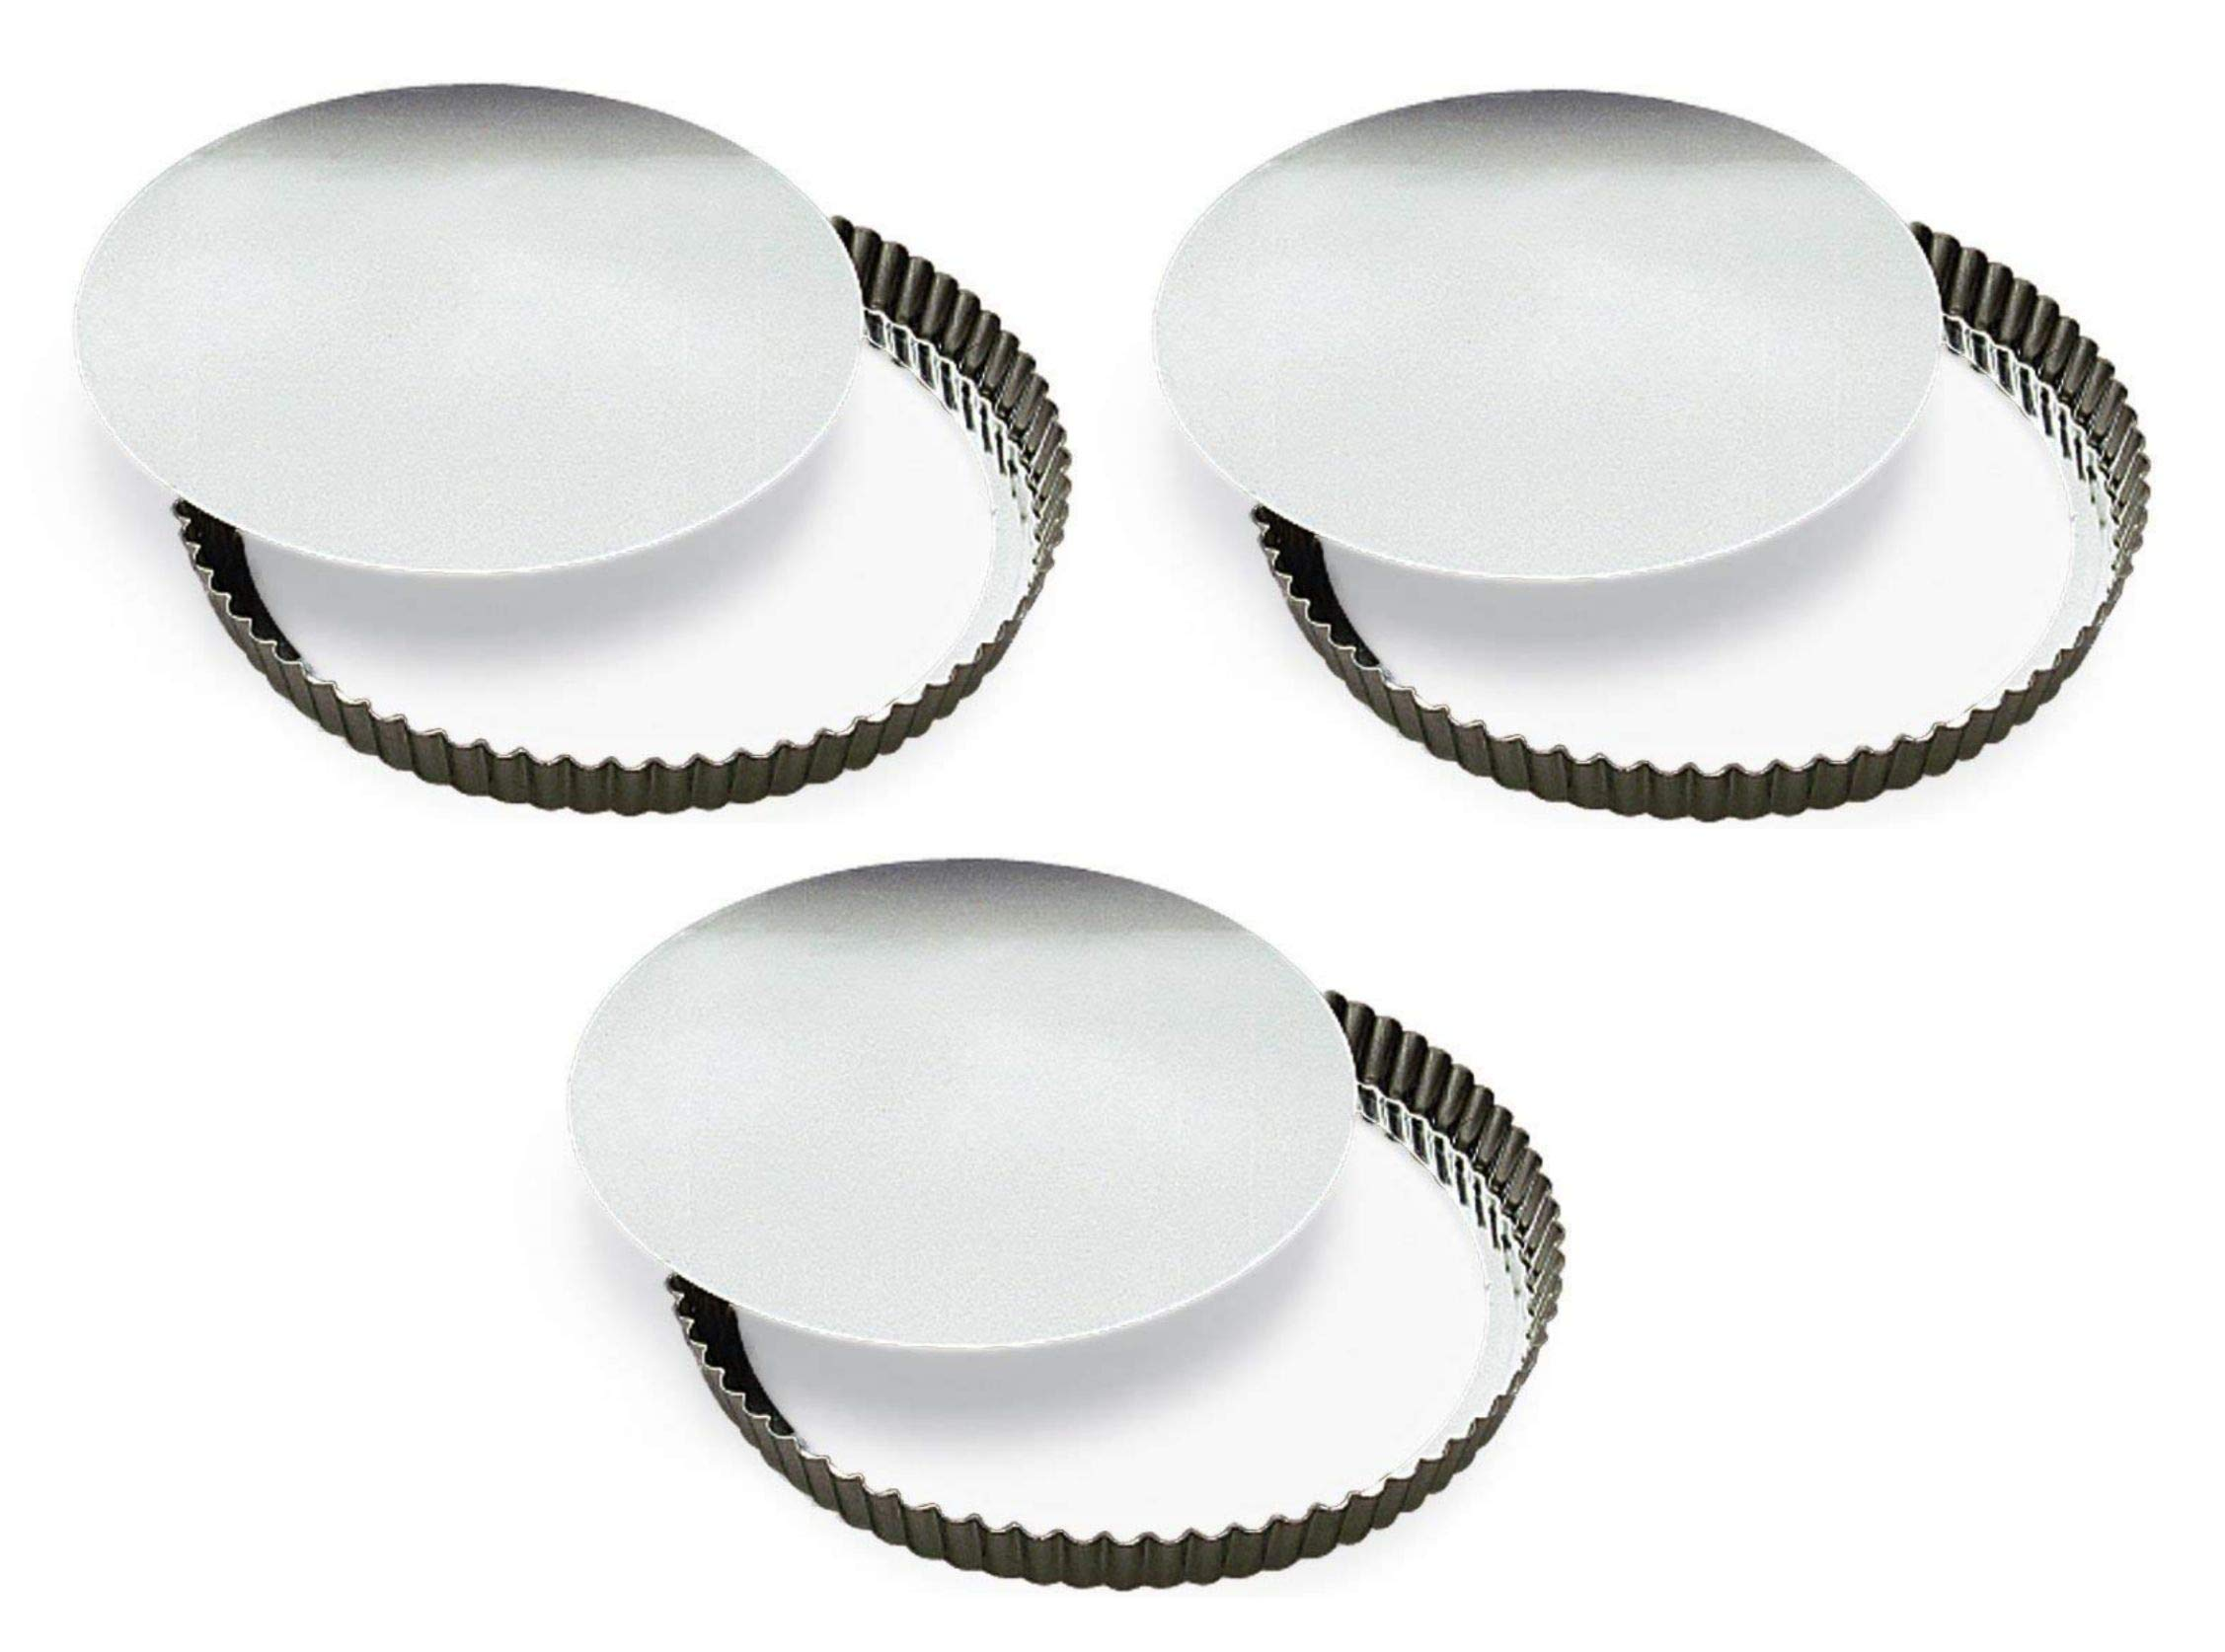 GOBEL 126650 12.5'' (32cm) / 1.40'' High - TIN Rem.Fluted Quiche Pan- SET OF 3 - [ GREAT VALUE! ] by Gobel